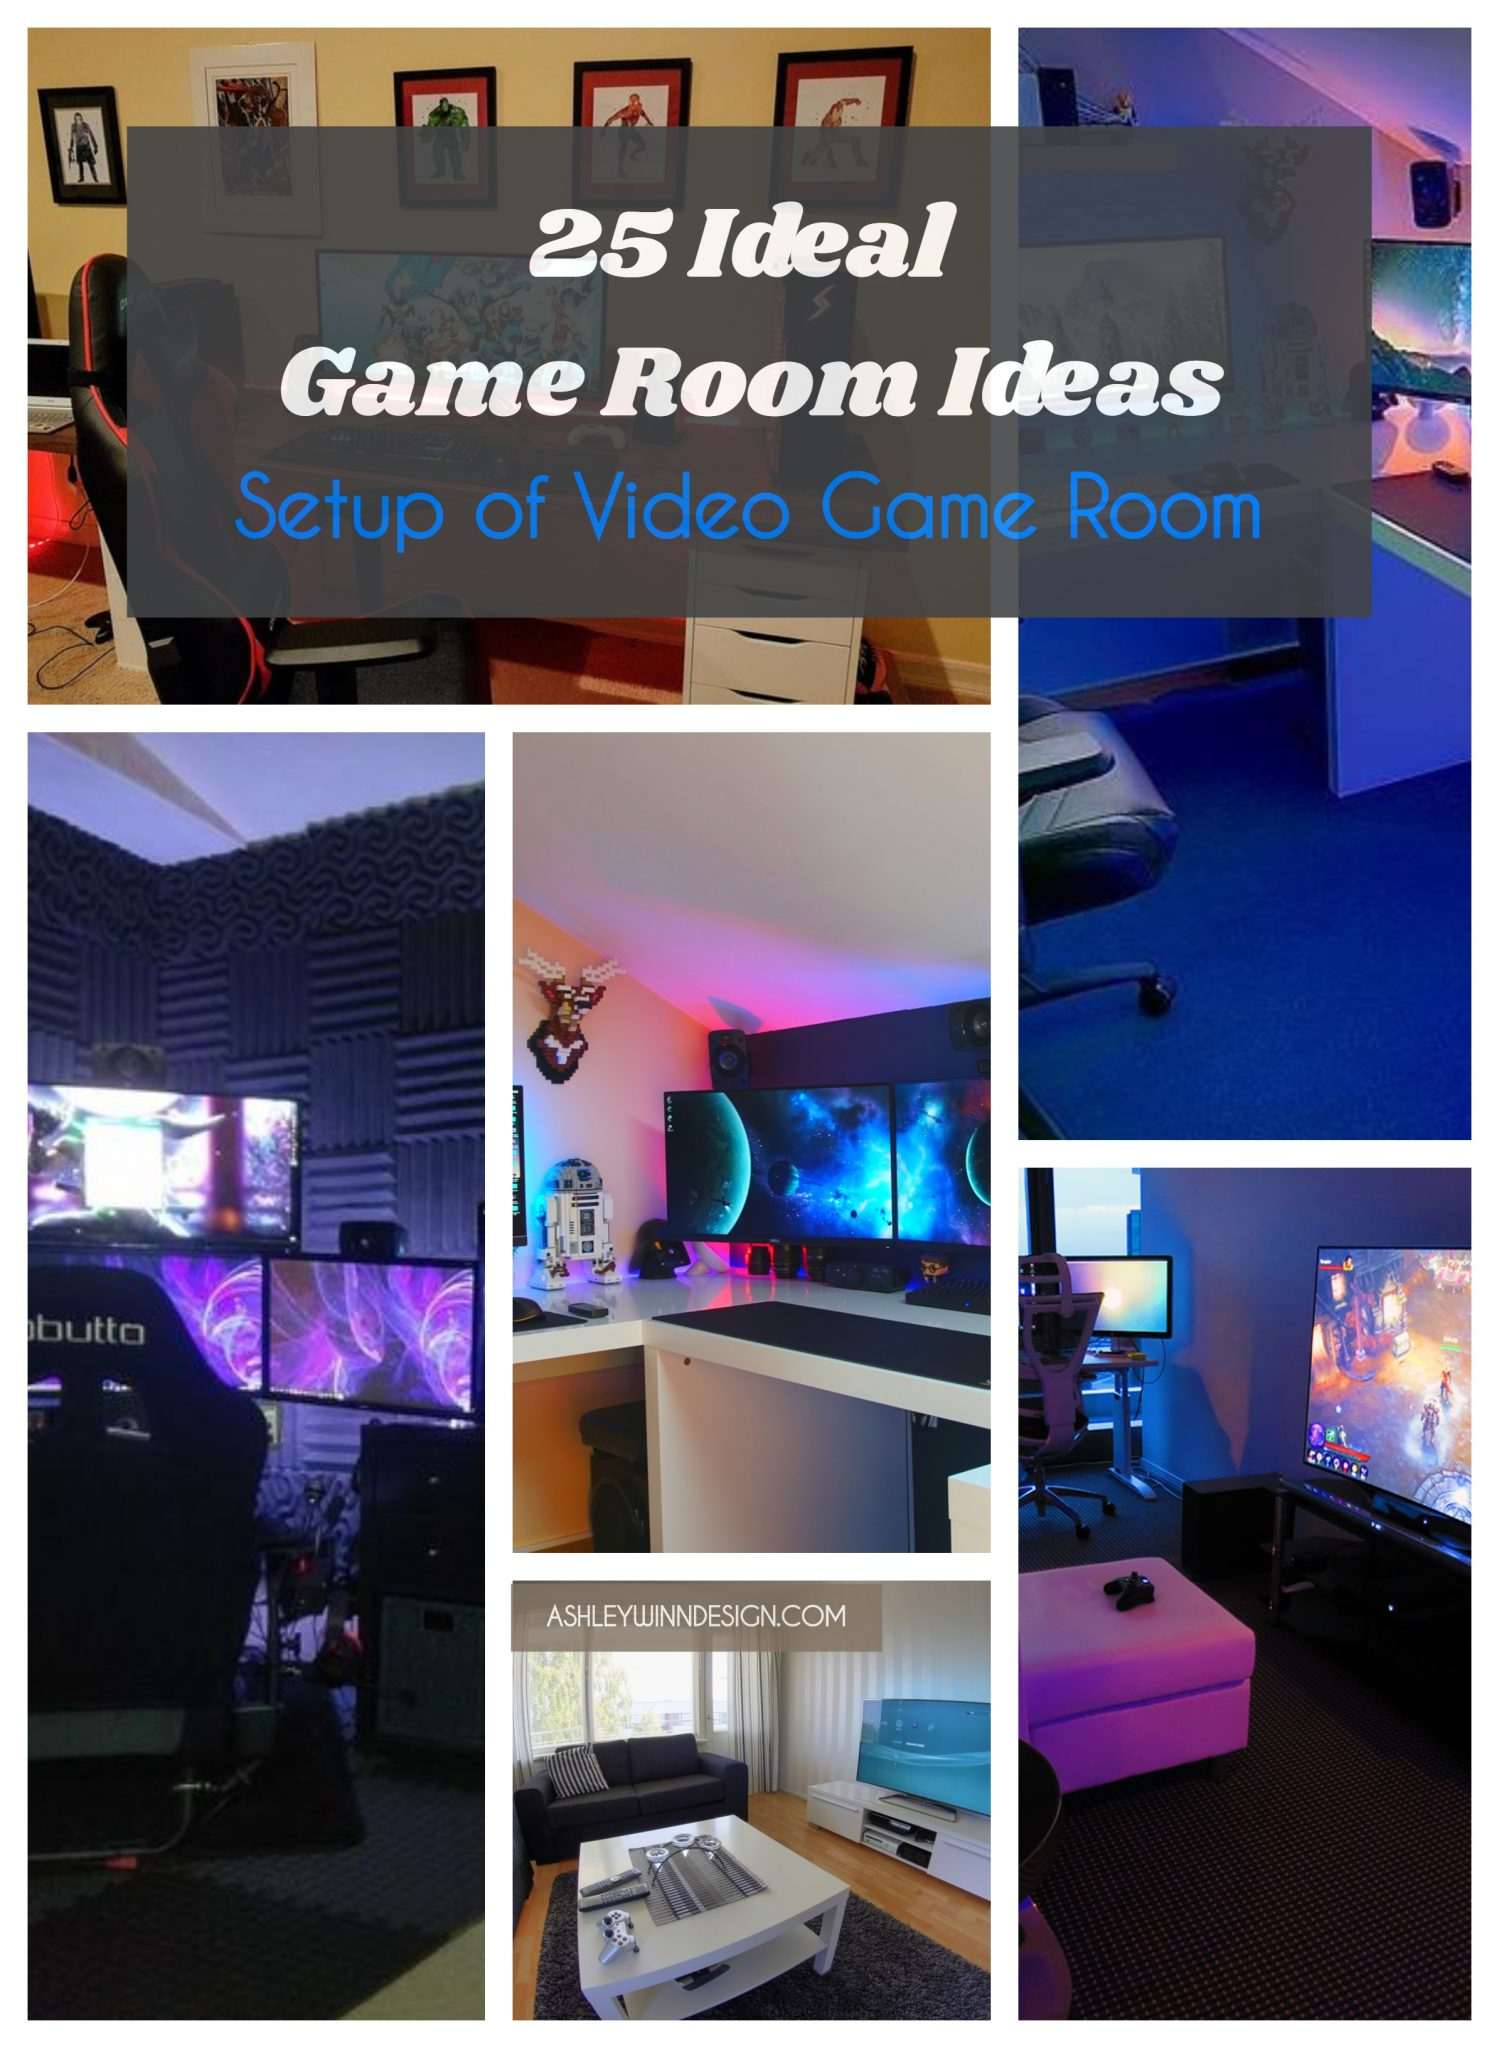 Game Room Ideas